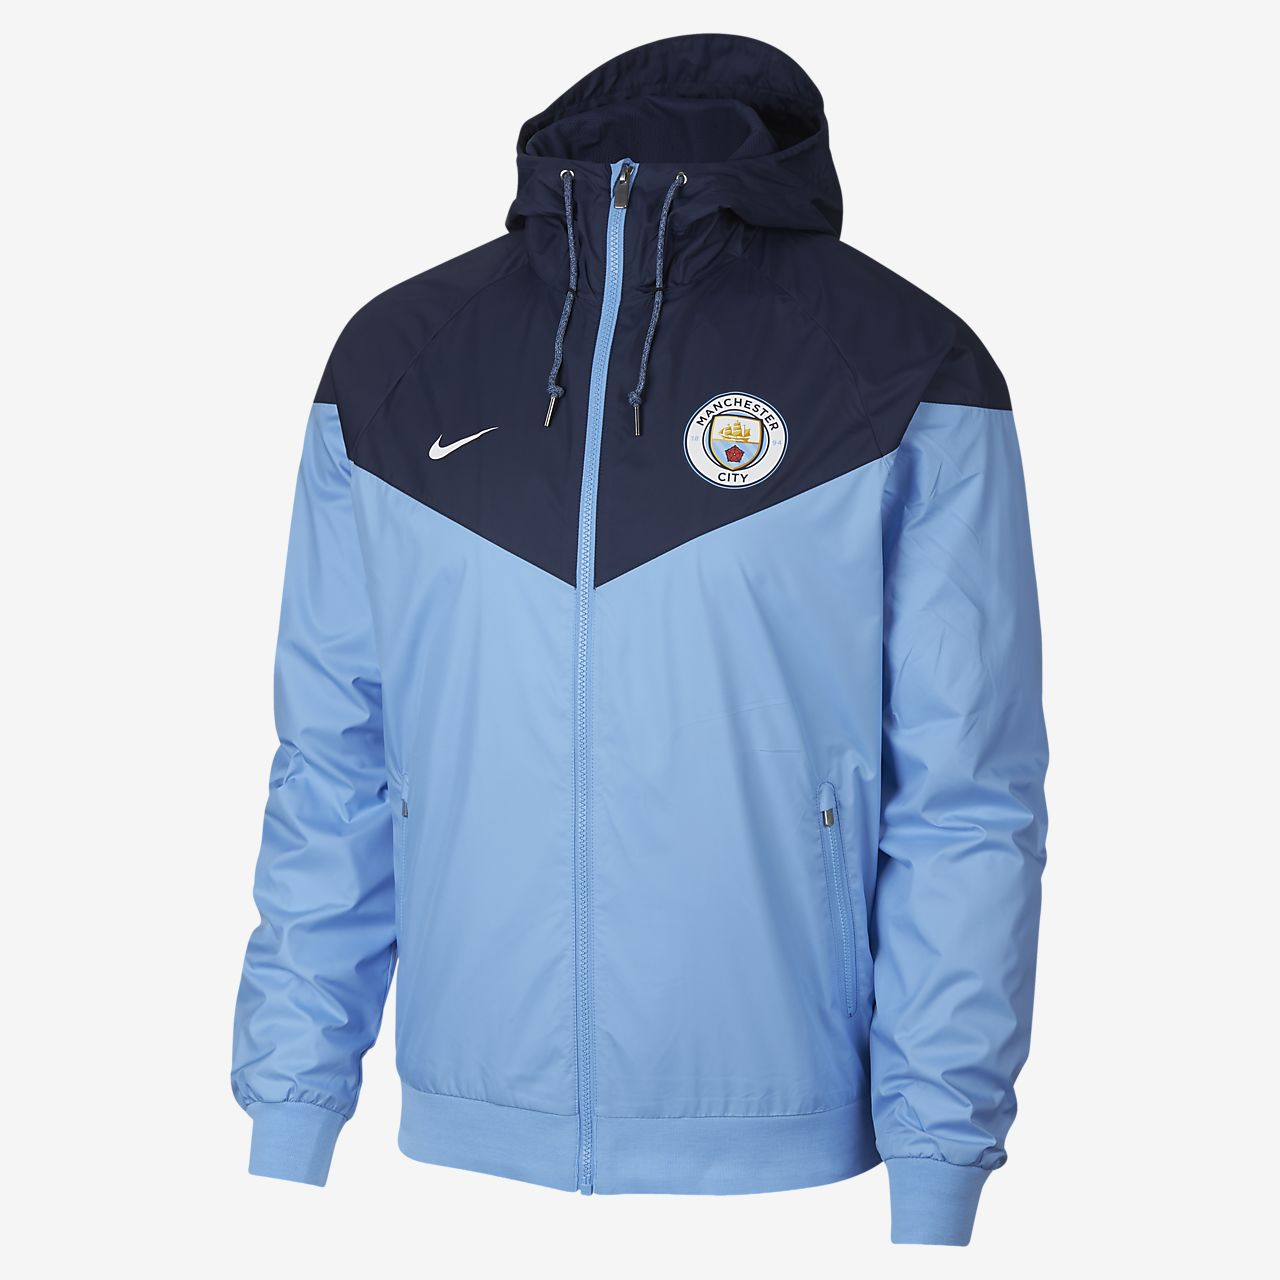 6ba7d349bb Manchester City FC Windrunner Men s Jacket. Nike.com NL